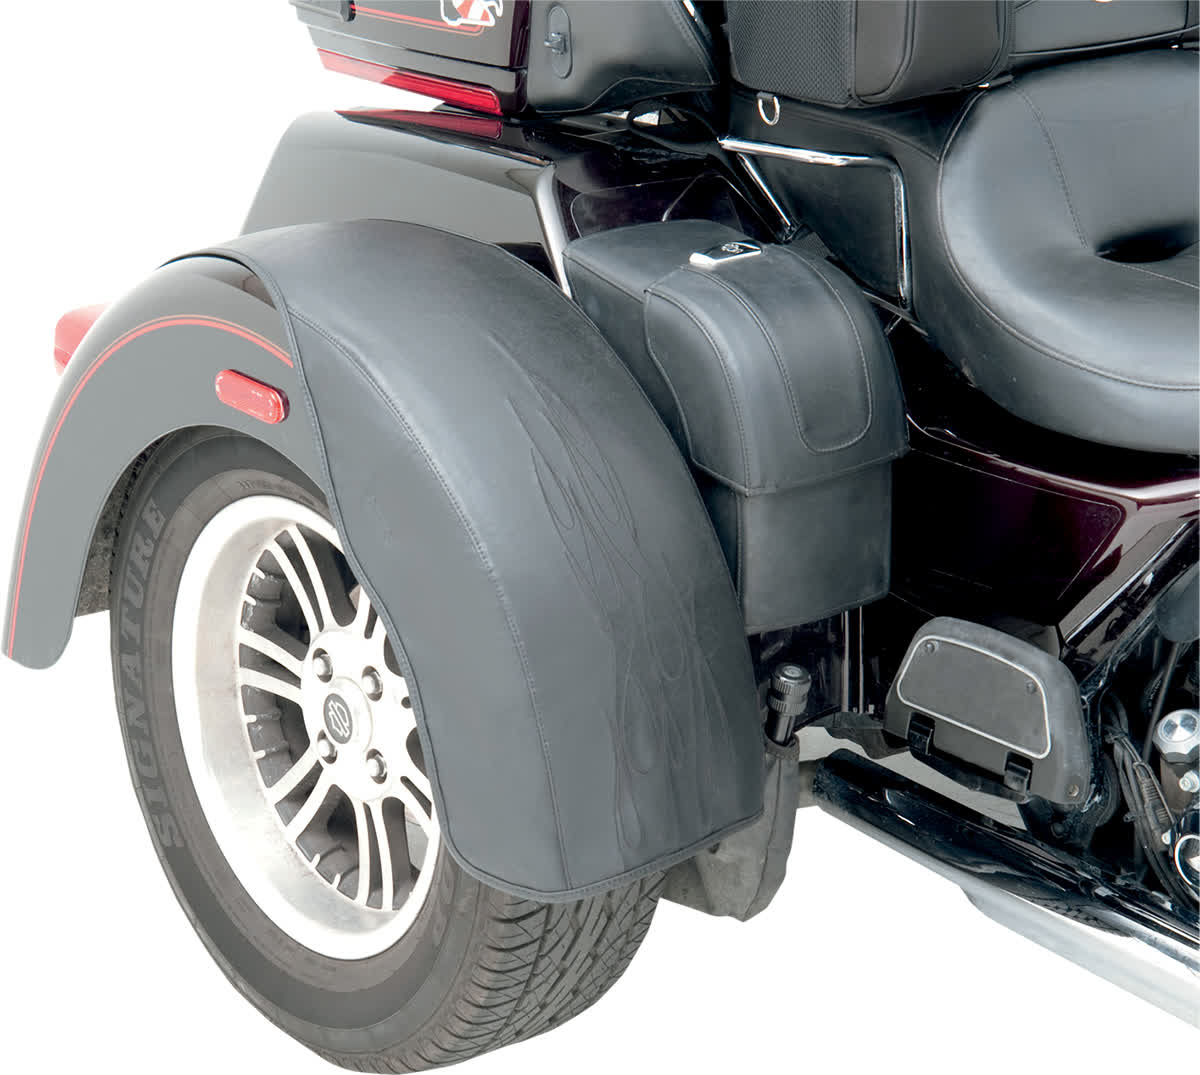 Saddlemen 1414-0014 Tattoo Rear Fender Bra Set